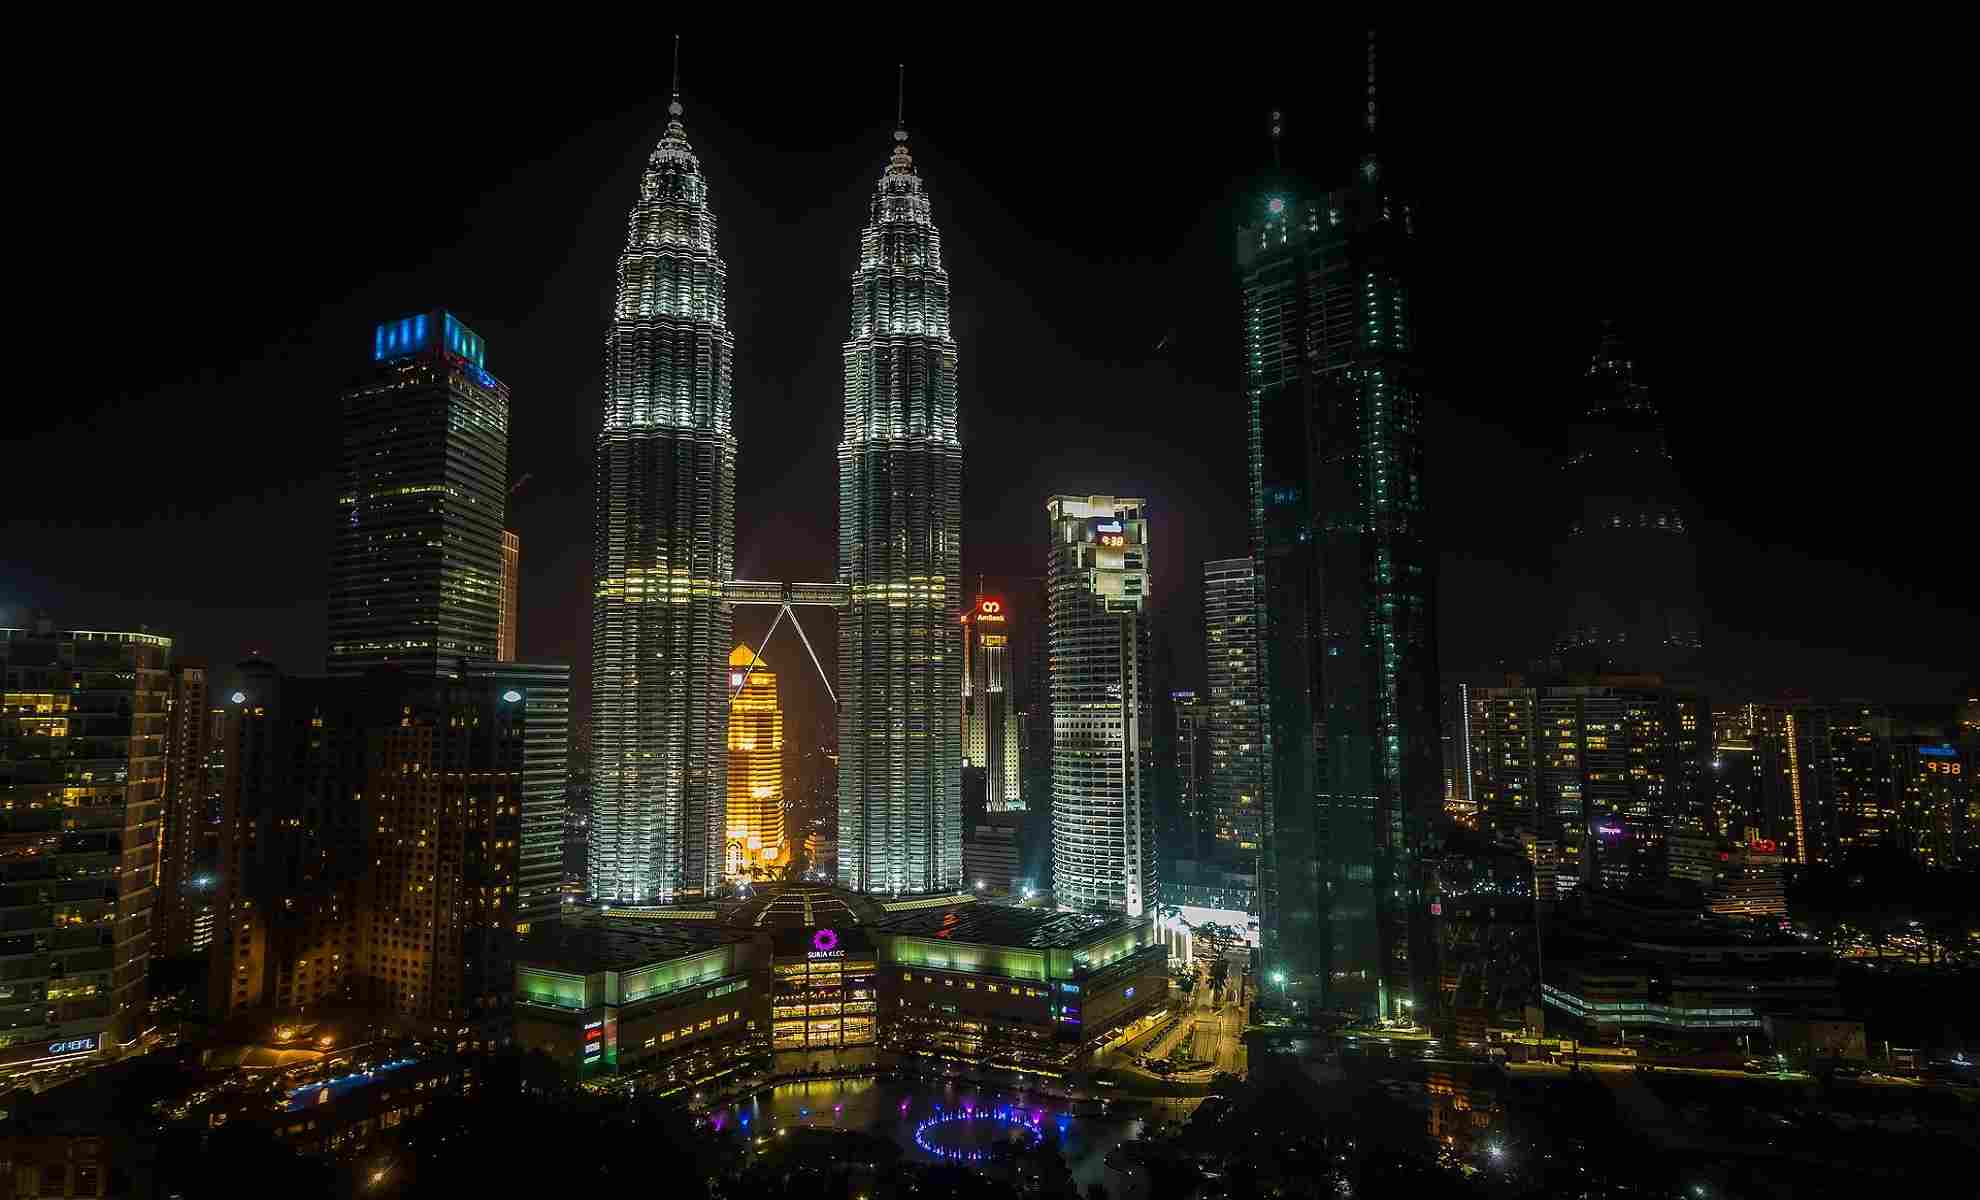 kl twin tower nightview